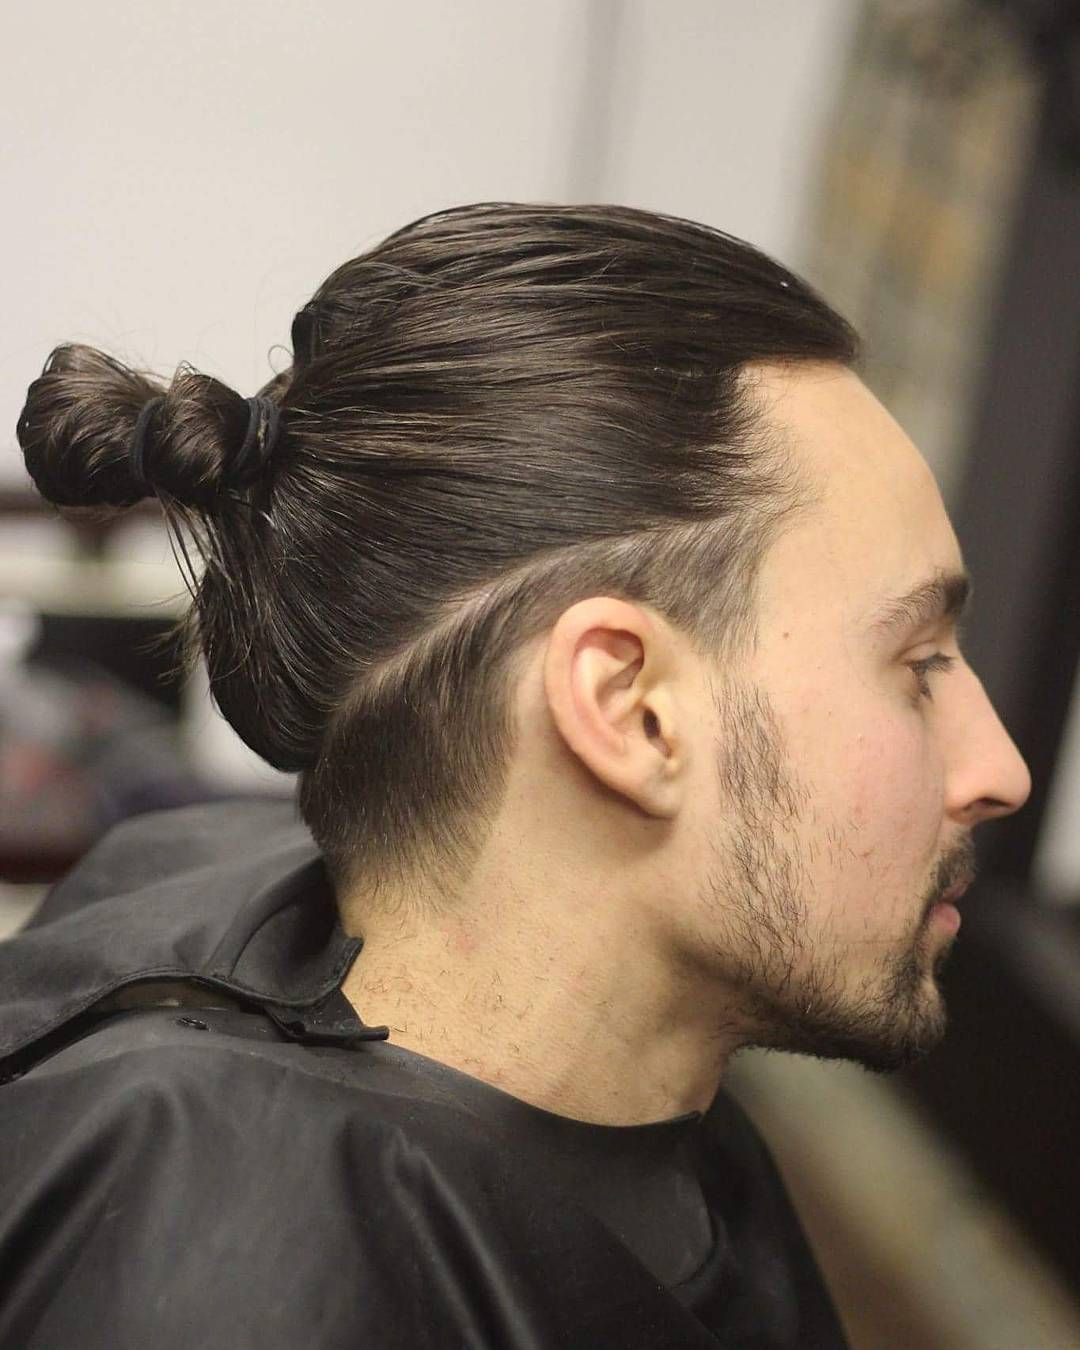 22 Long Hair Ideas For Men Cool Long Haircuts Hairstyles For 2020 Guy Haircuts Long Undercut Long Hair Mens Hairstyles Undercut